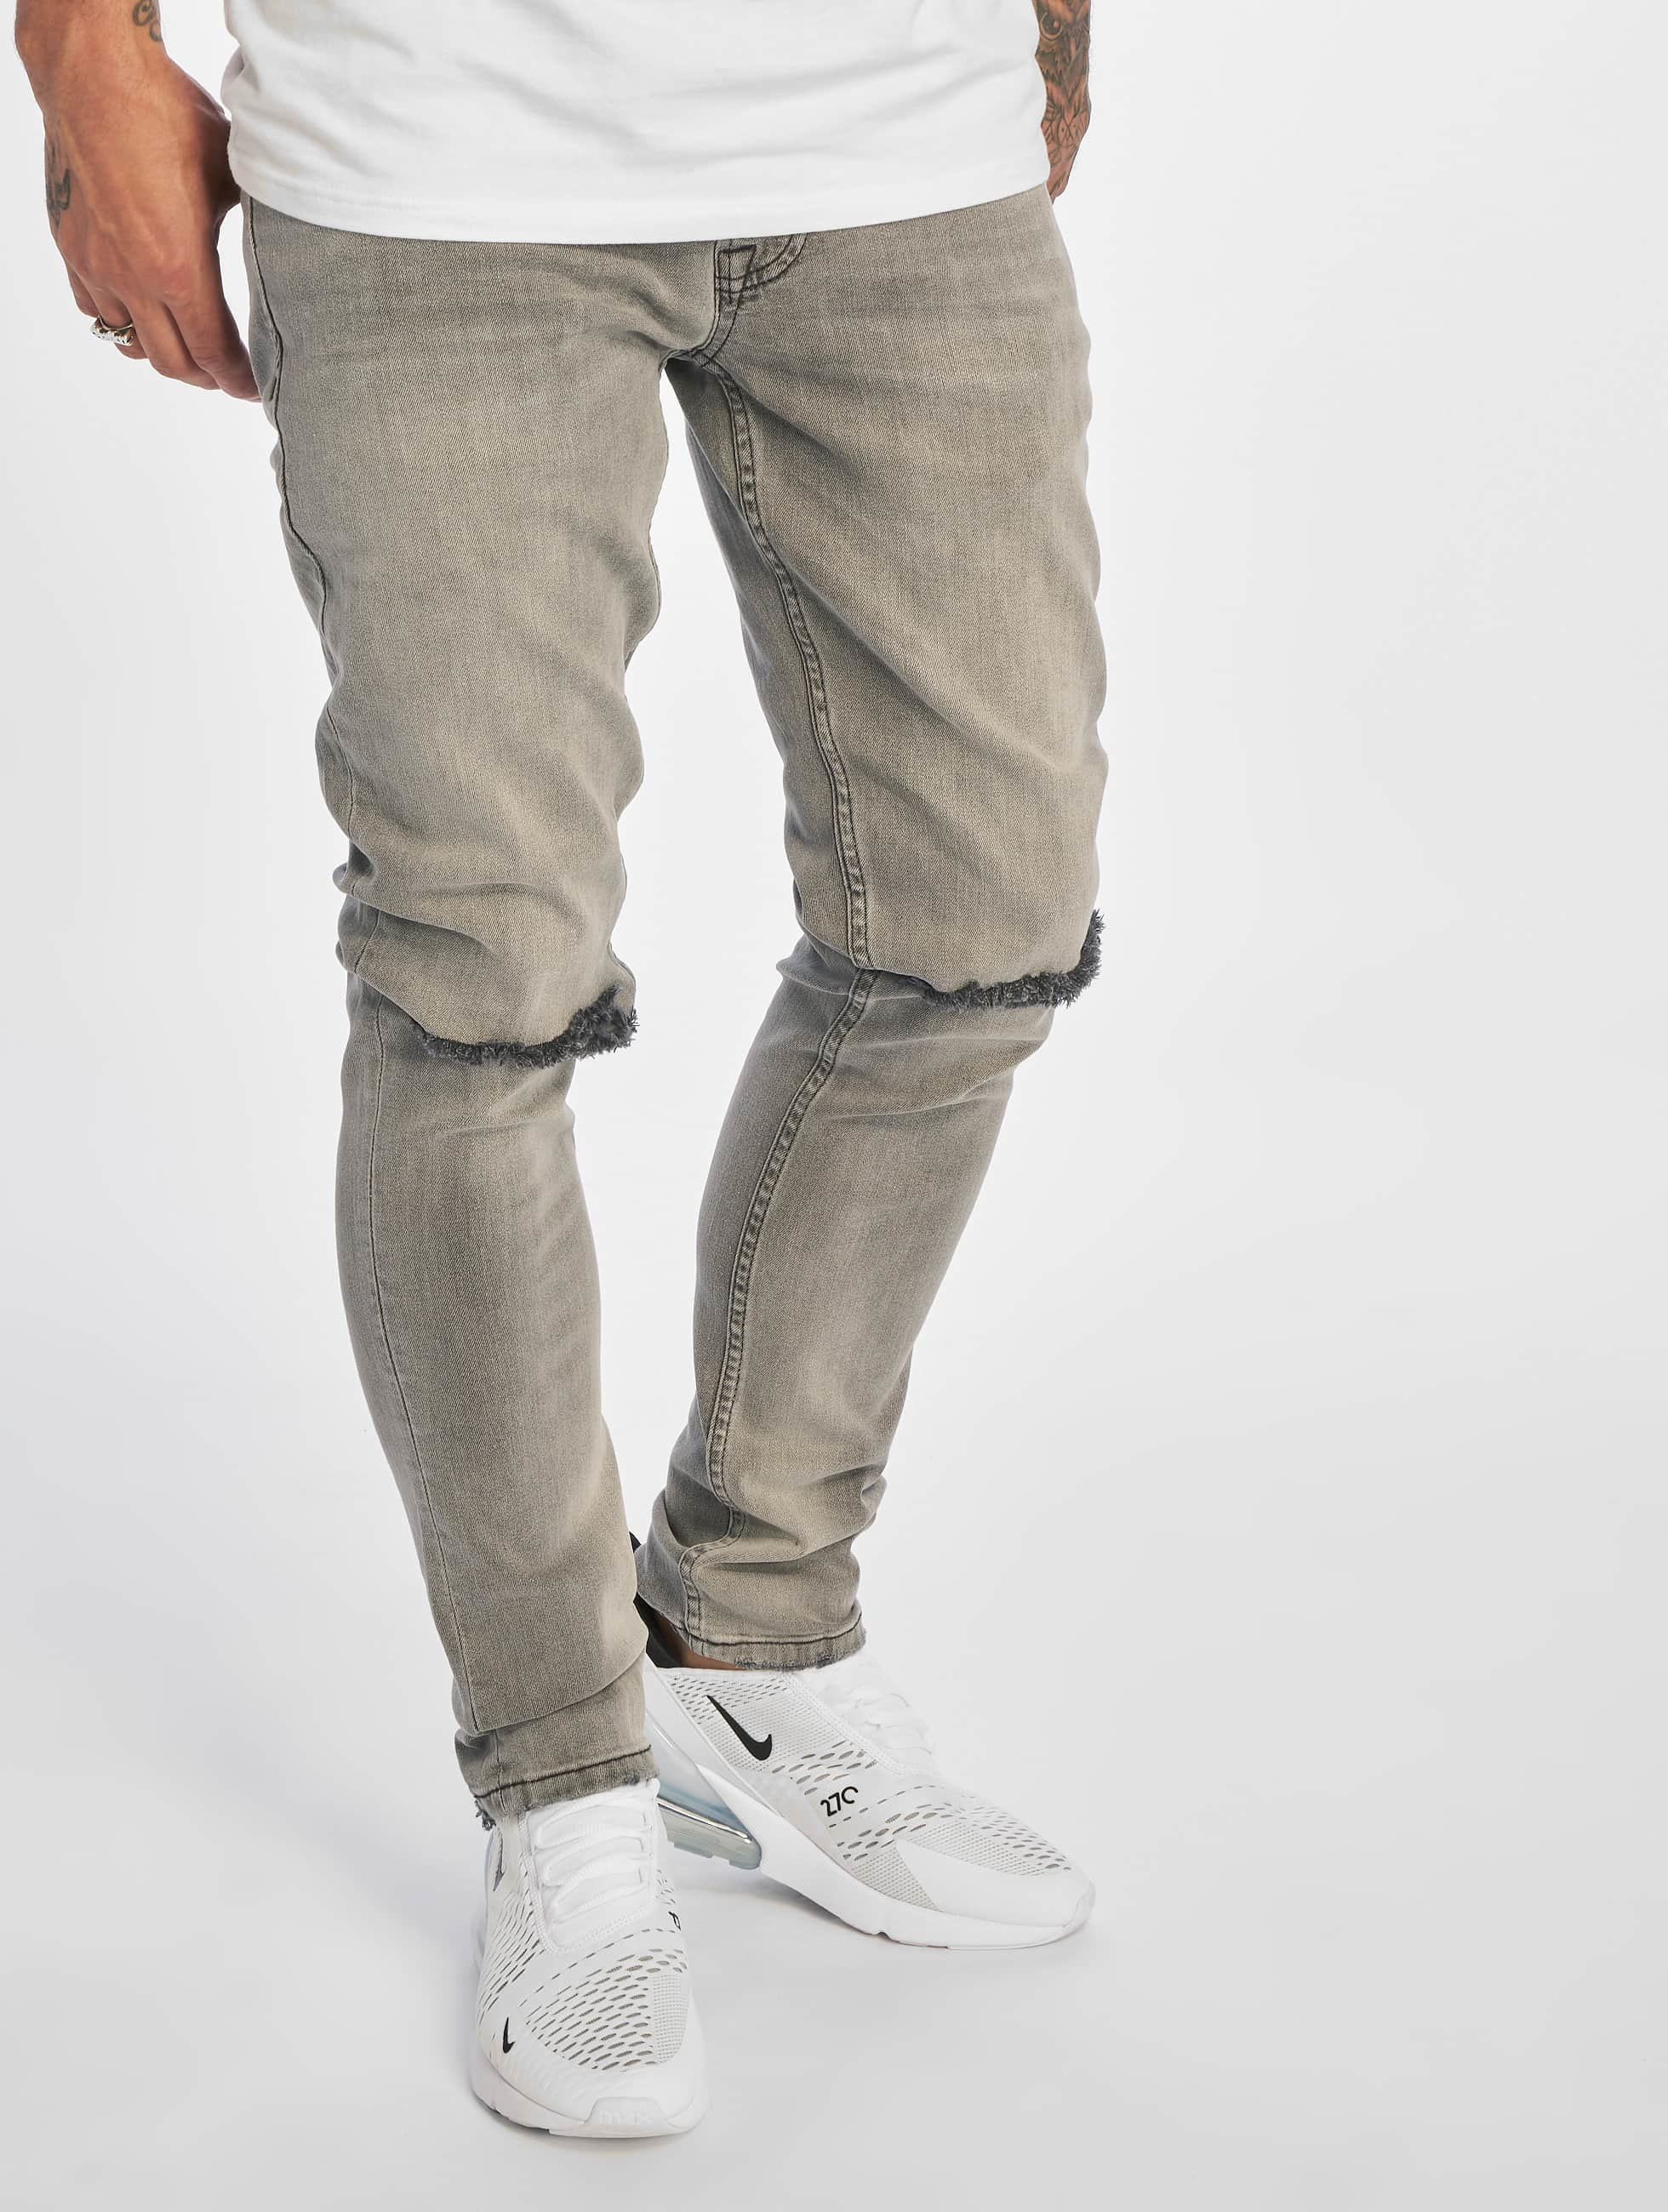 2Y / Slim Fit Jeans Jerry in grey W 36